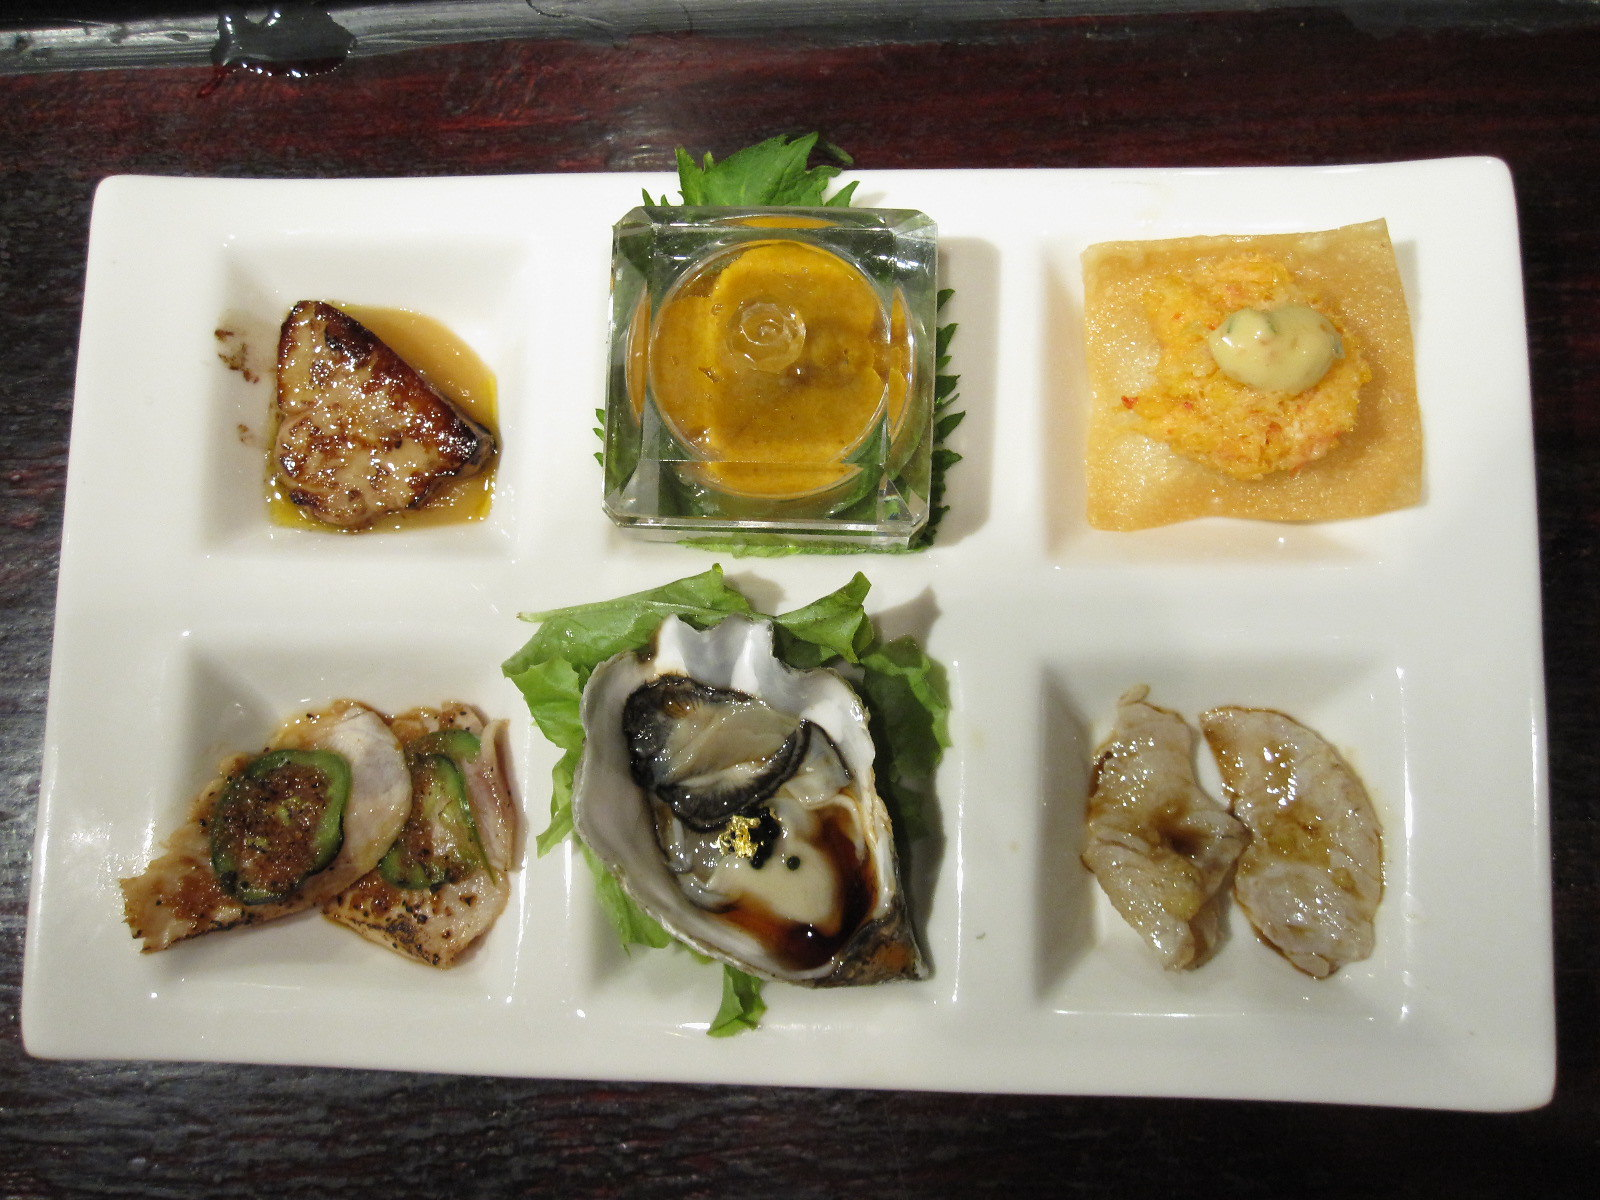 An example of a chef's tasting menu - photo by TheDeliciousLife under CC BY 2.0